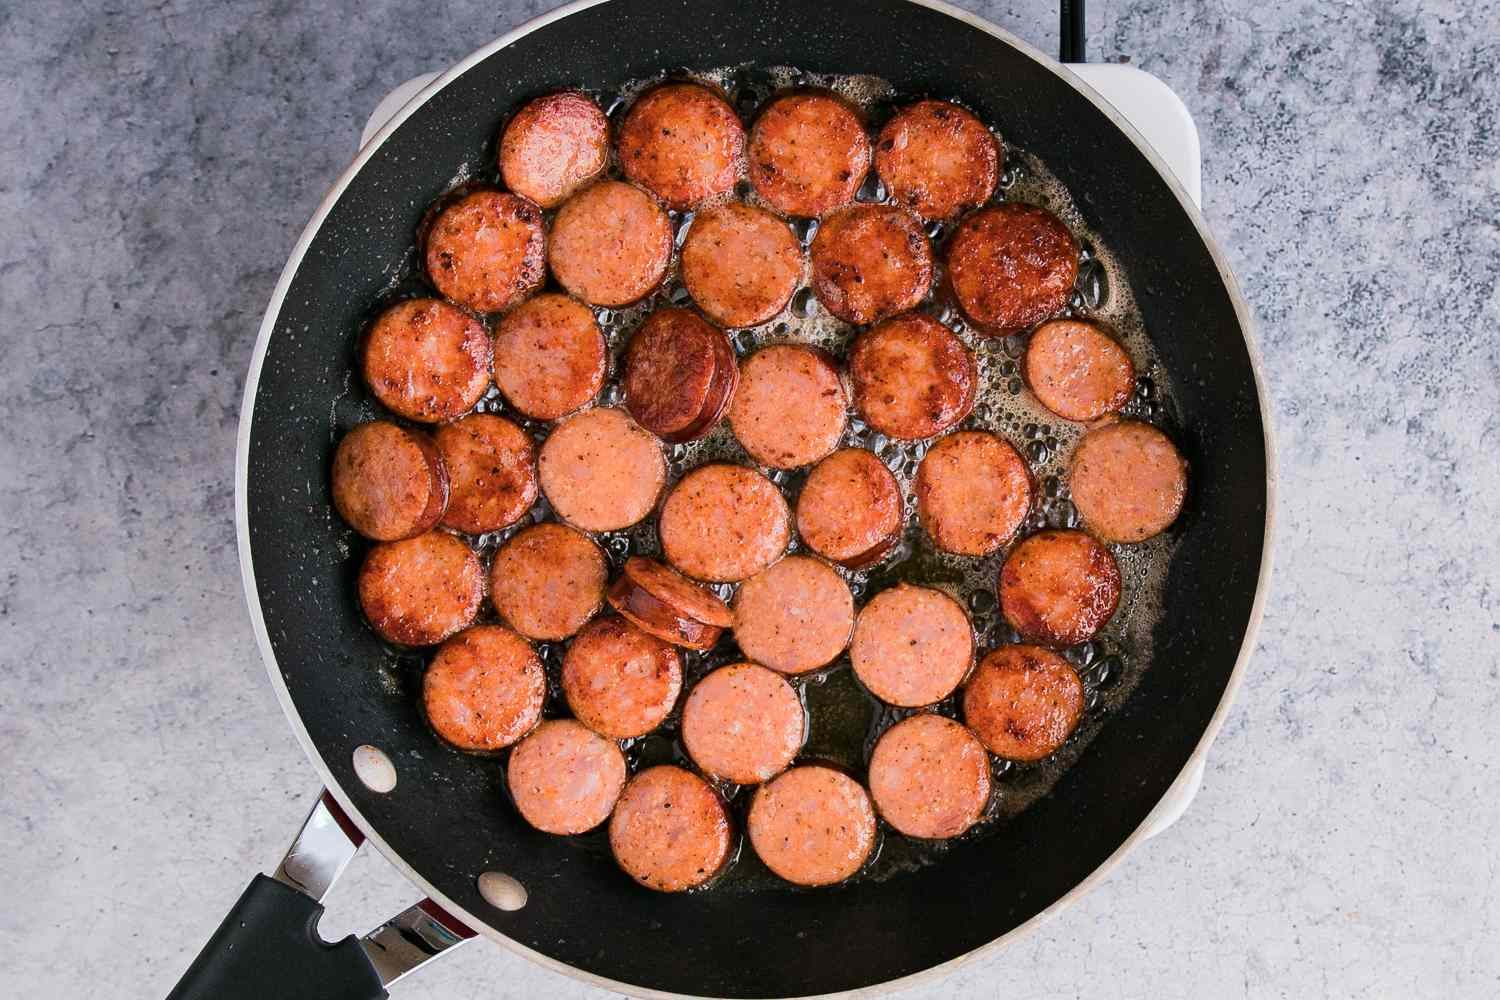 In a small saucepan, heat butter and sauté the smoked sausage until browned